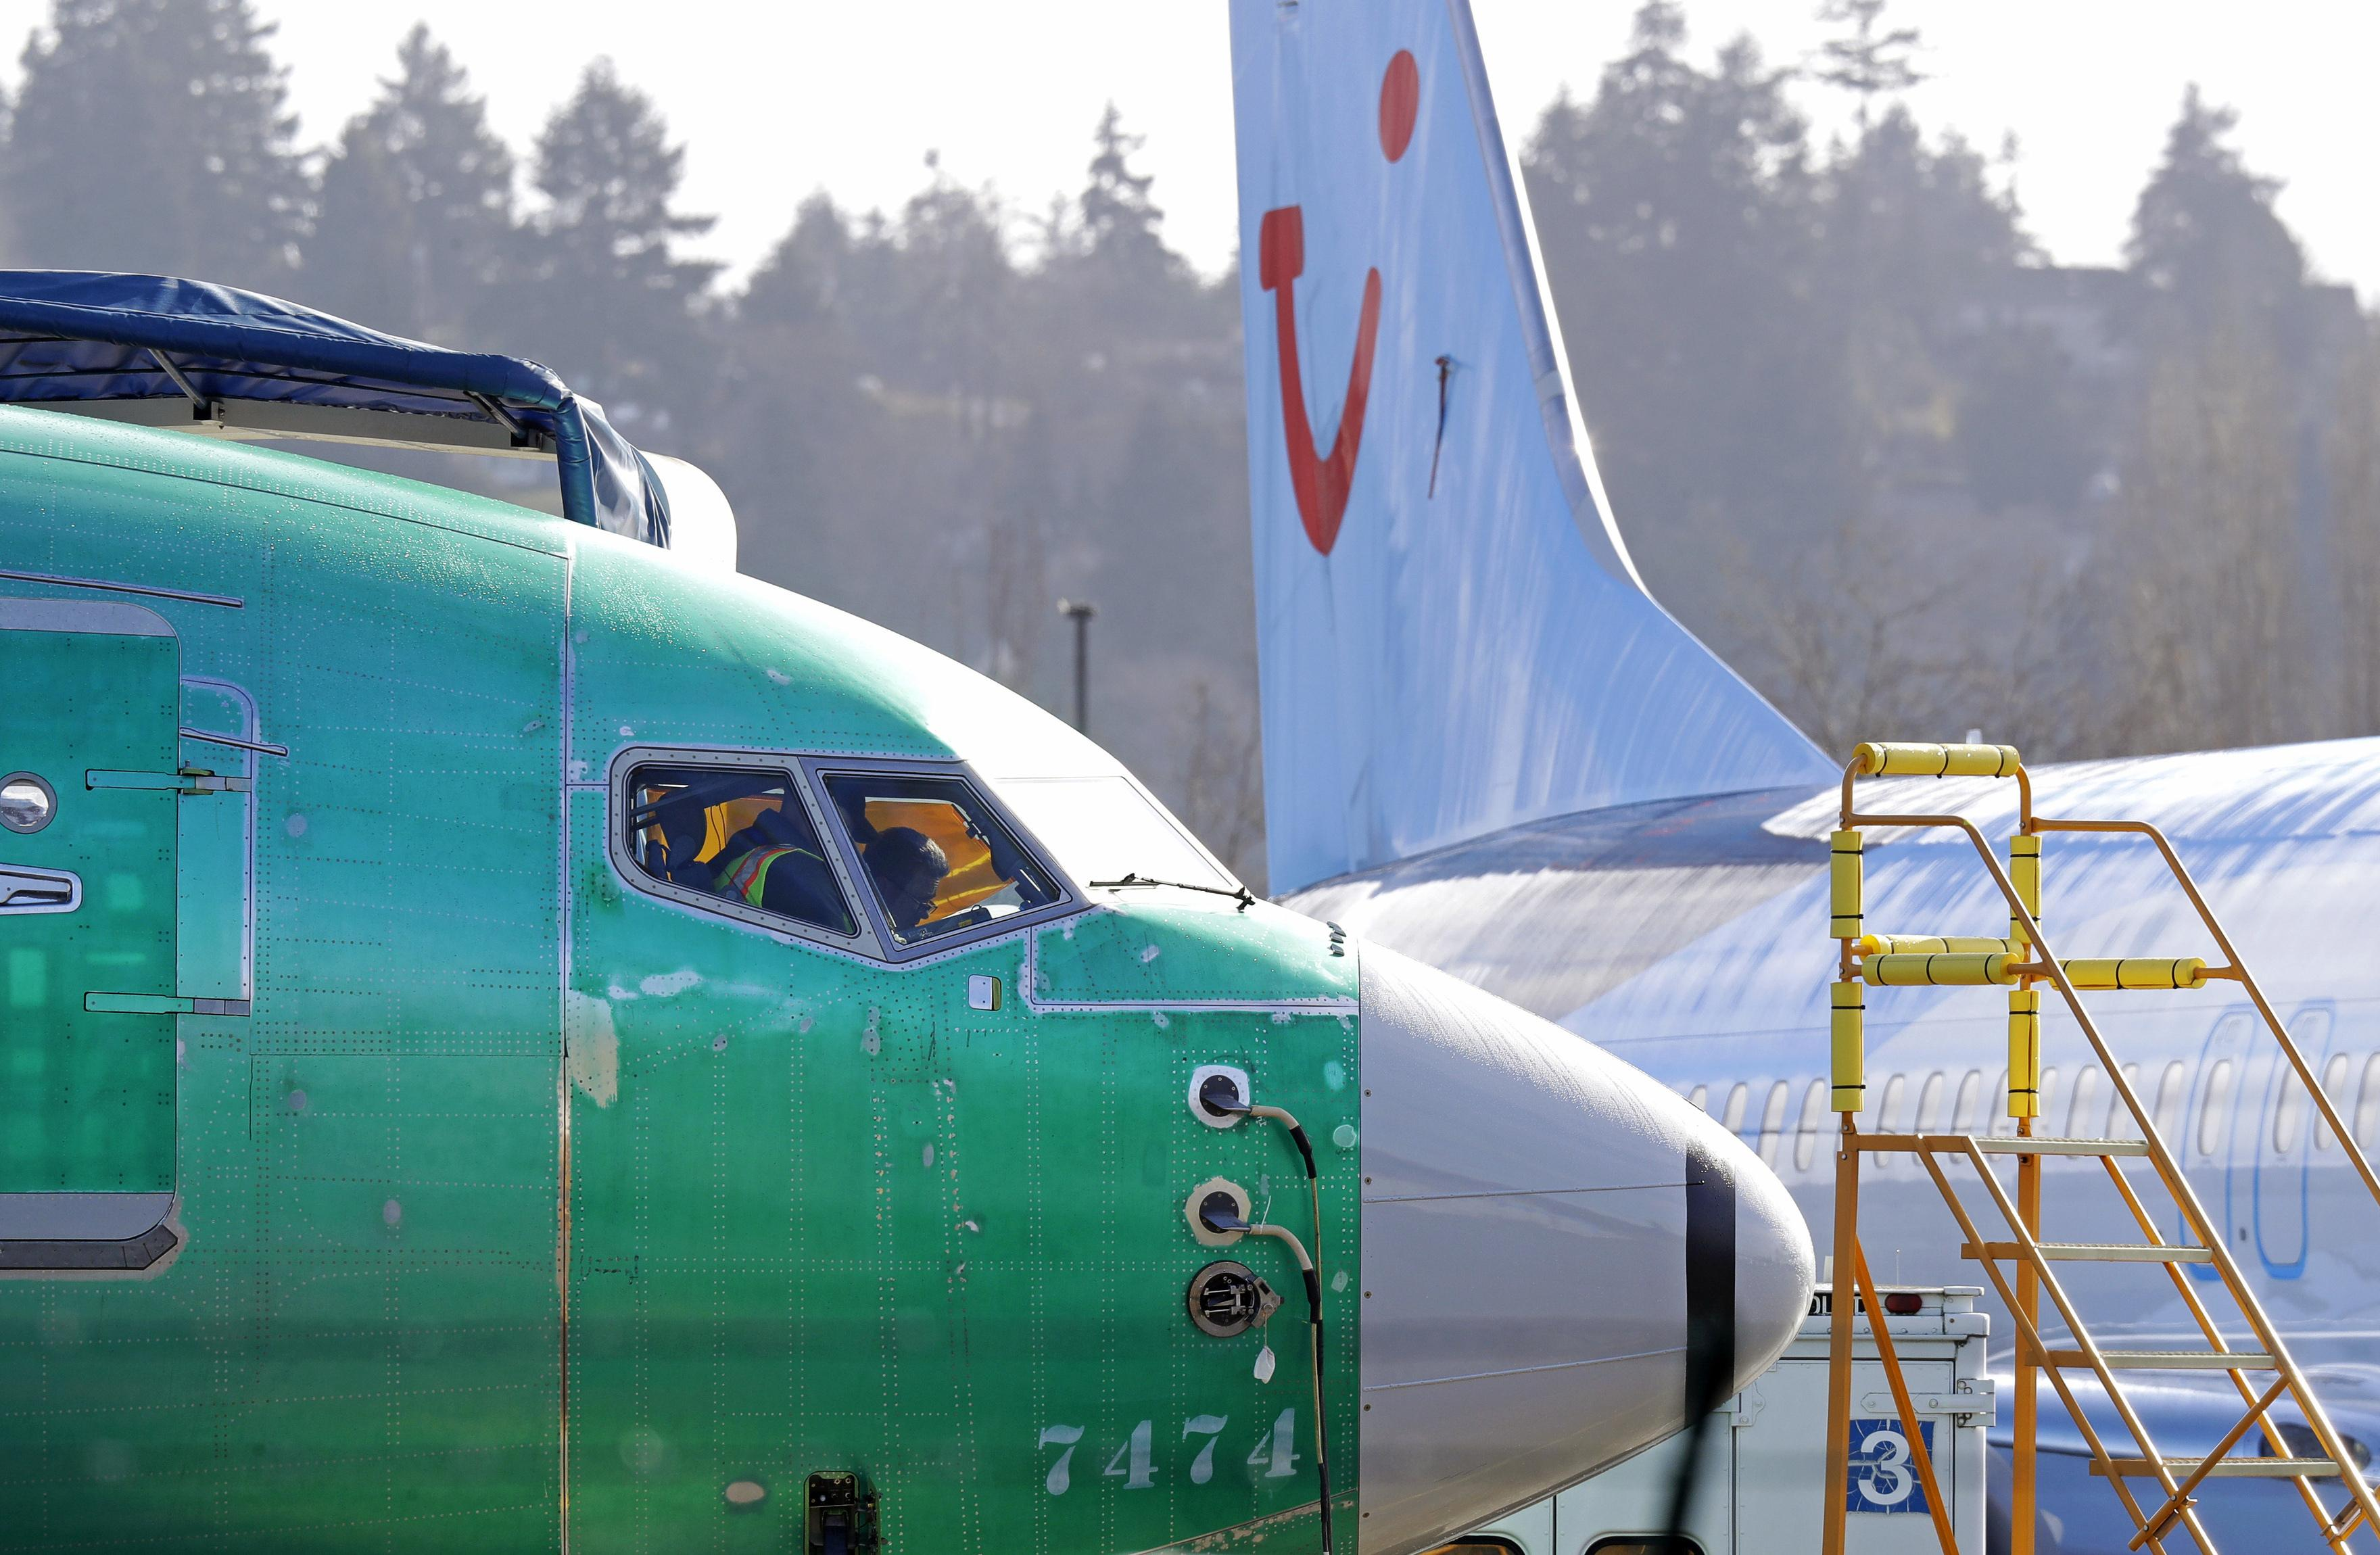 Early fix for 737 MAX 8 was in FAA's hands 7 weeks before